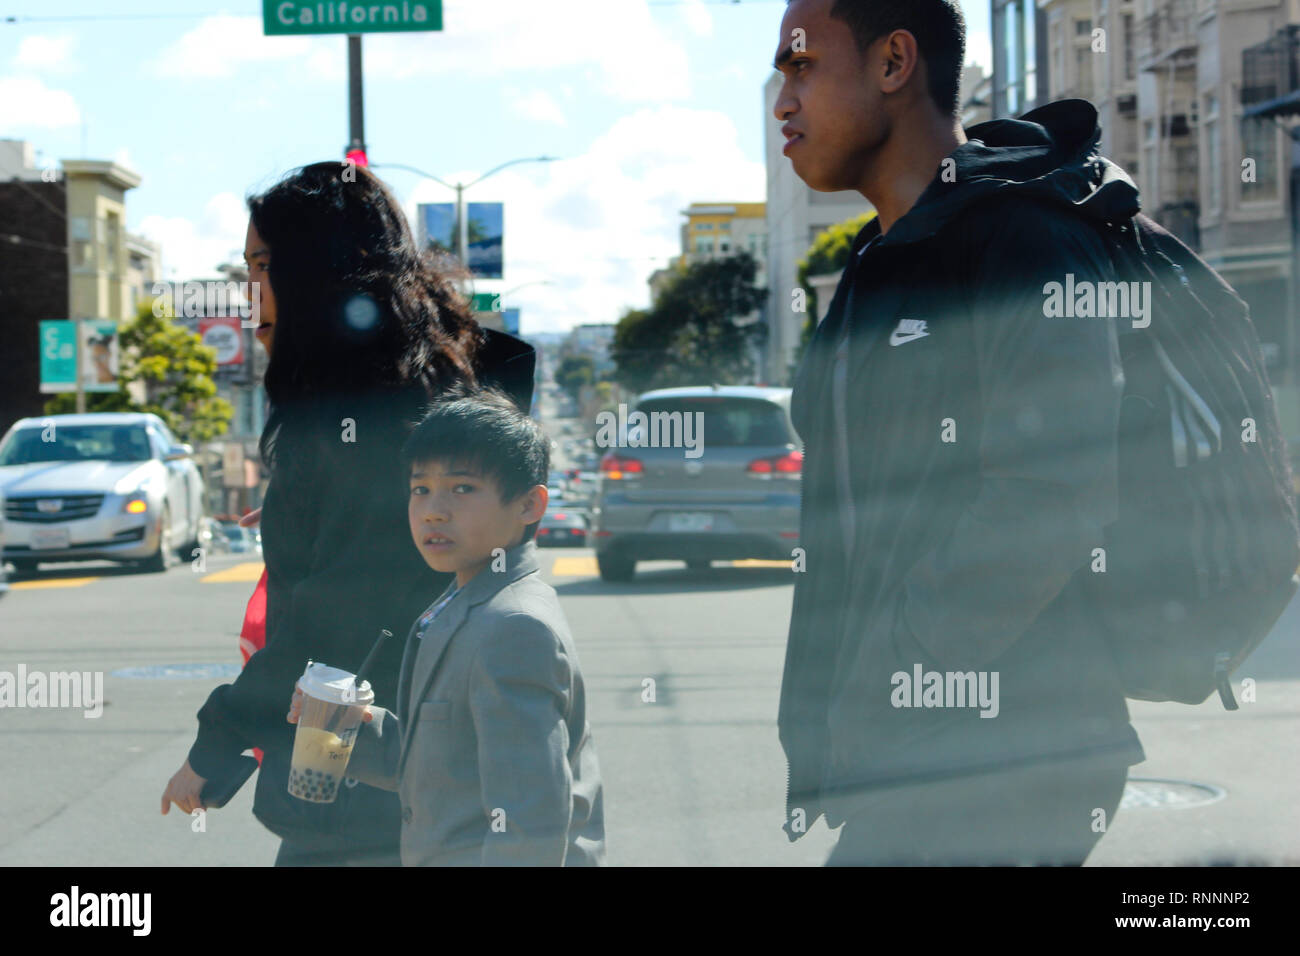 A young boy turns to the camera as he crosses the street in the city of San Francisco, CA. - Stock Image